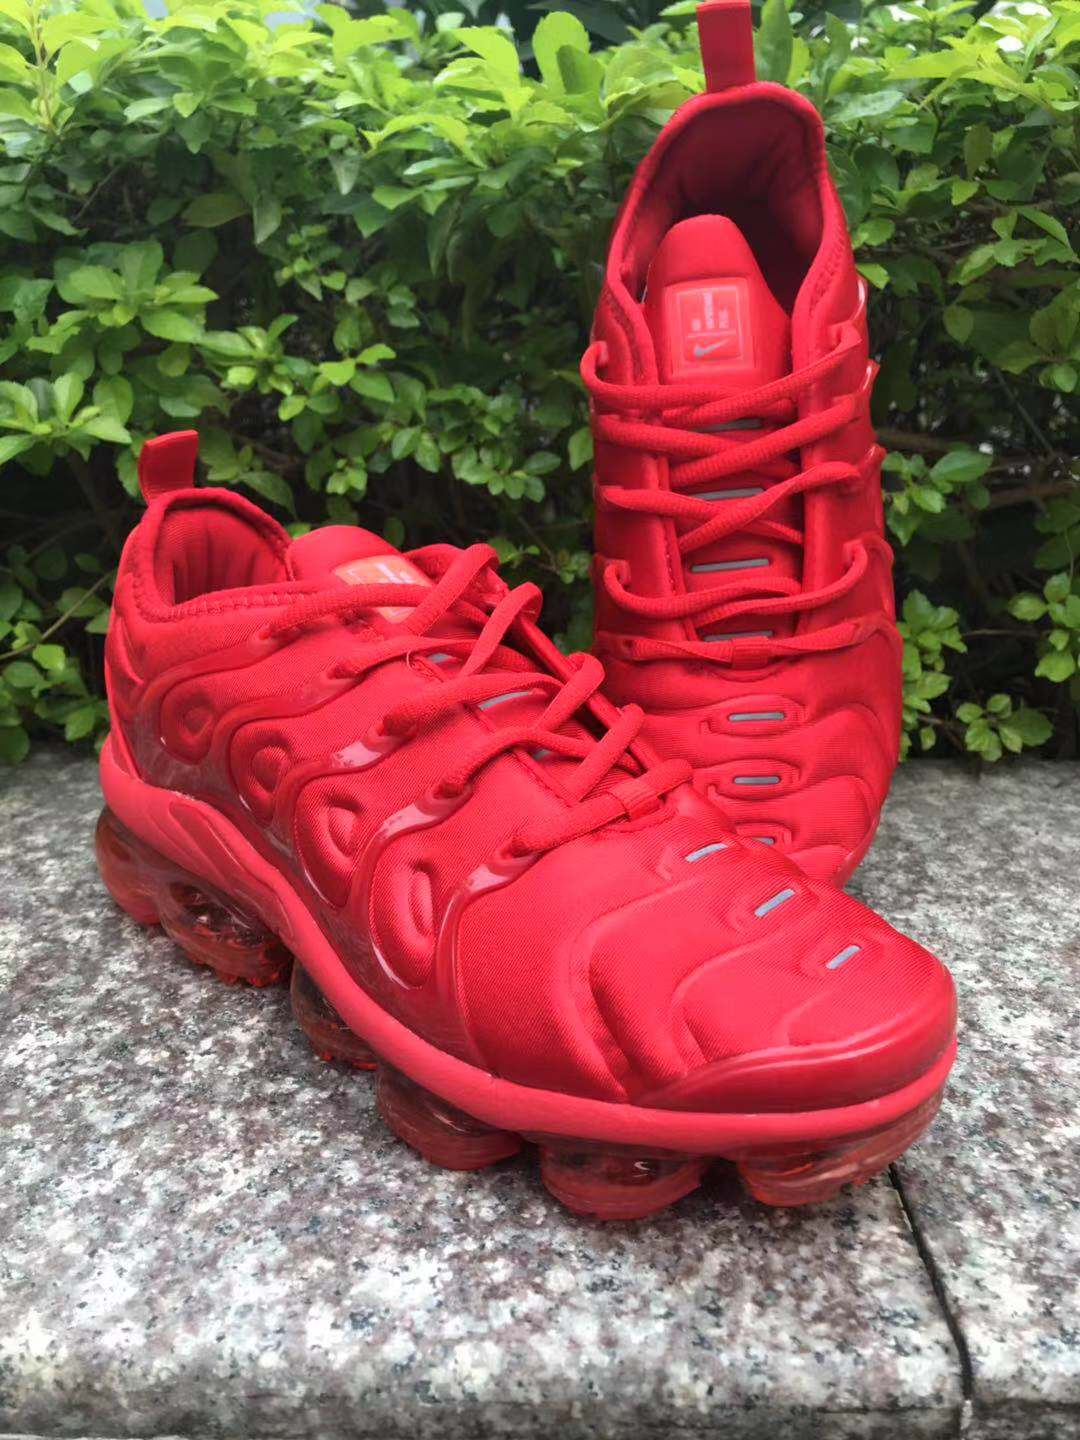 Nike Air Vapormax Plus 2018 TN All Red Shoes